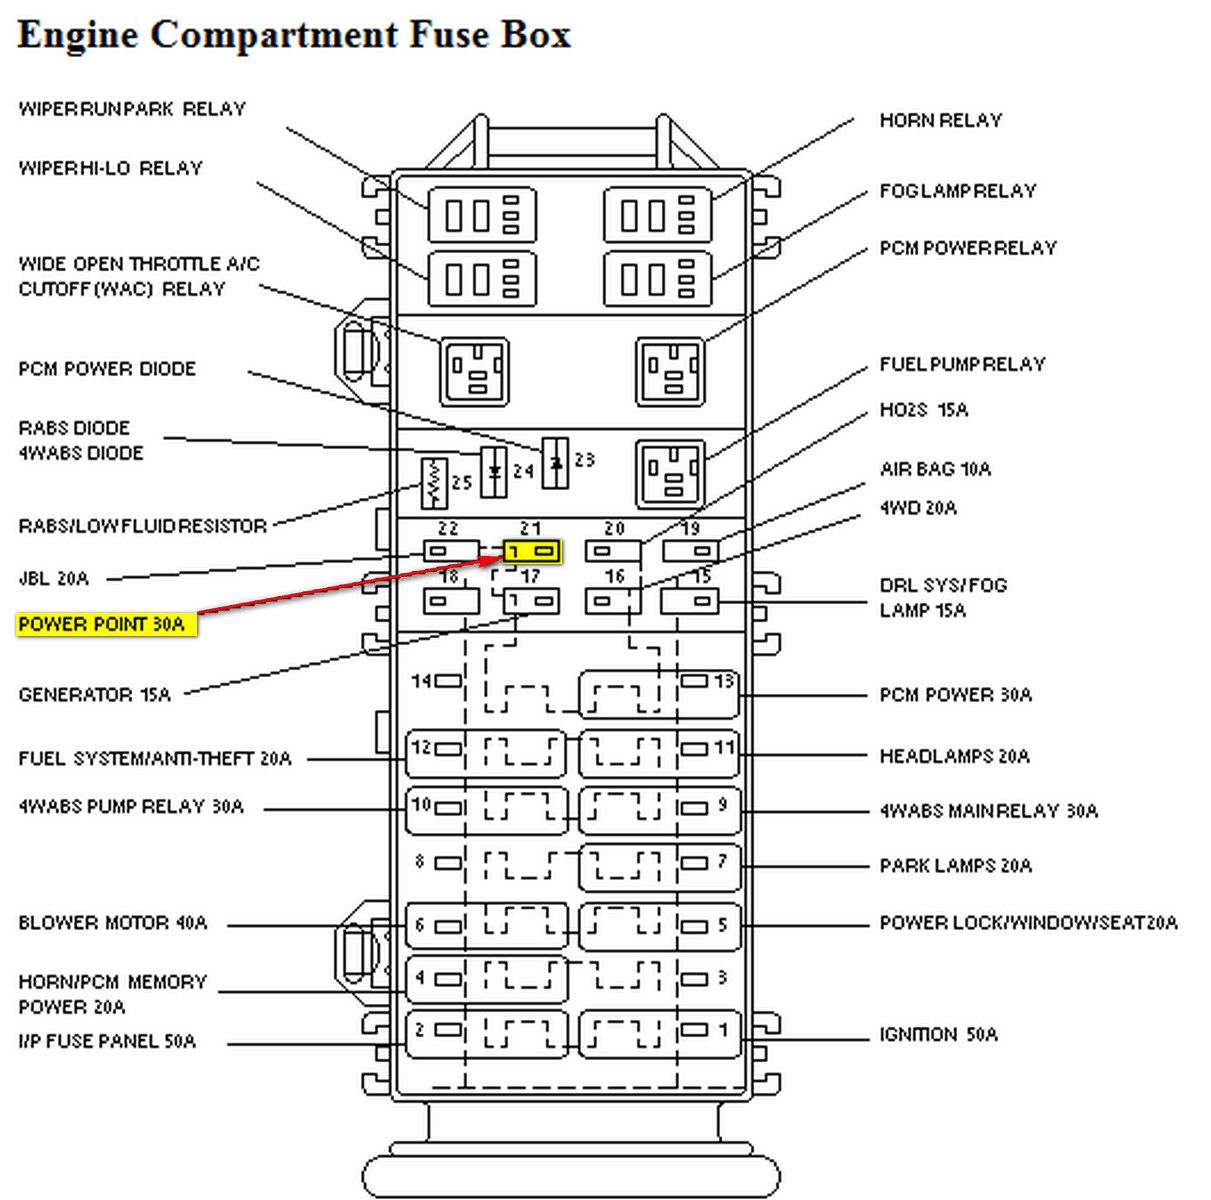 hight resolution of wrg 4838 2002 ford f 150 fx4 fuse panel diagram 94 lincoln town car fuse diagram